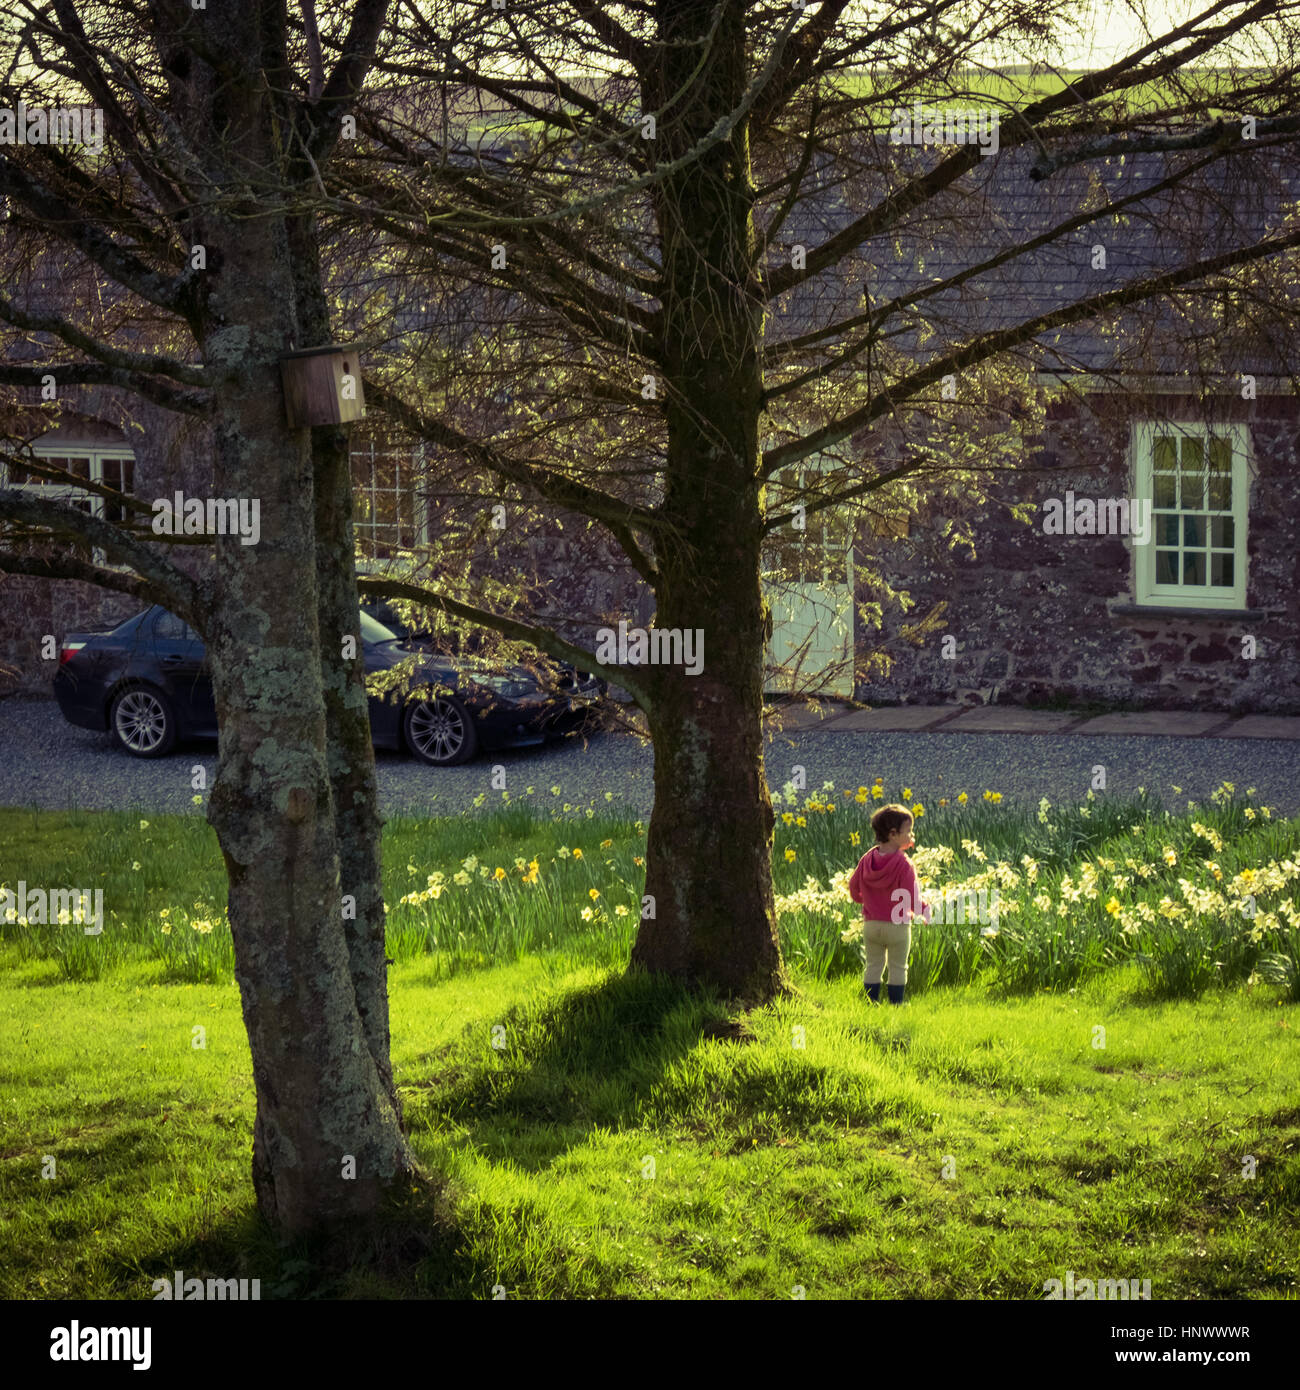 Lost in the springtime daffodils - Stock Image